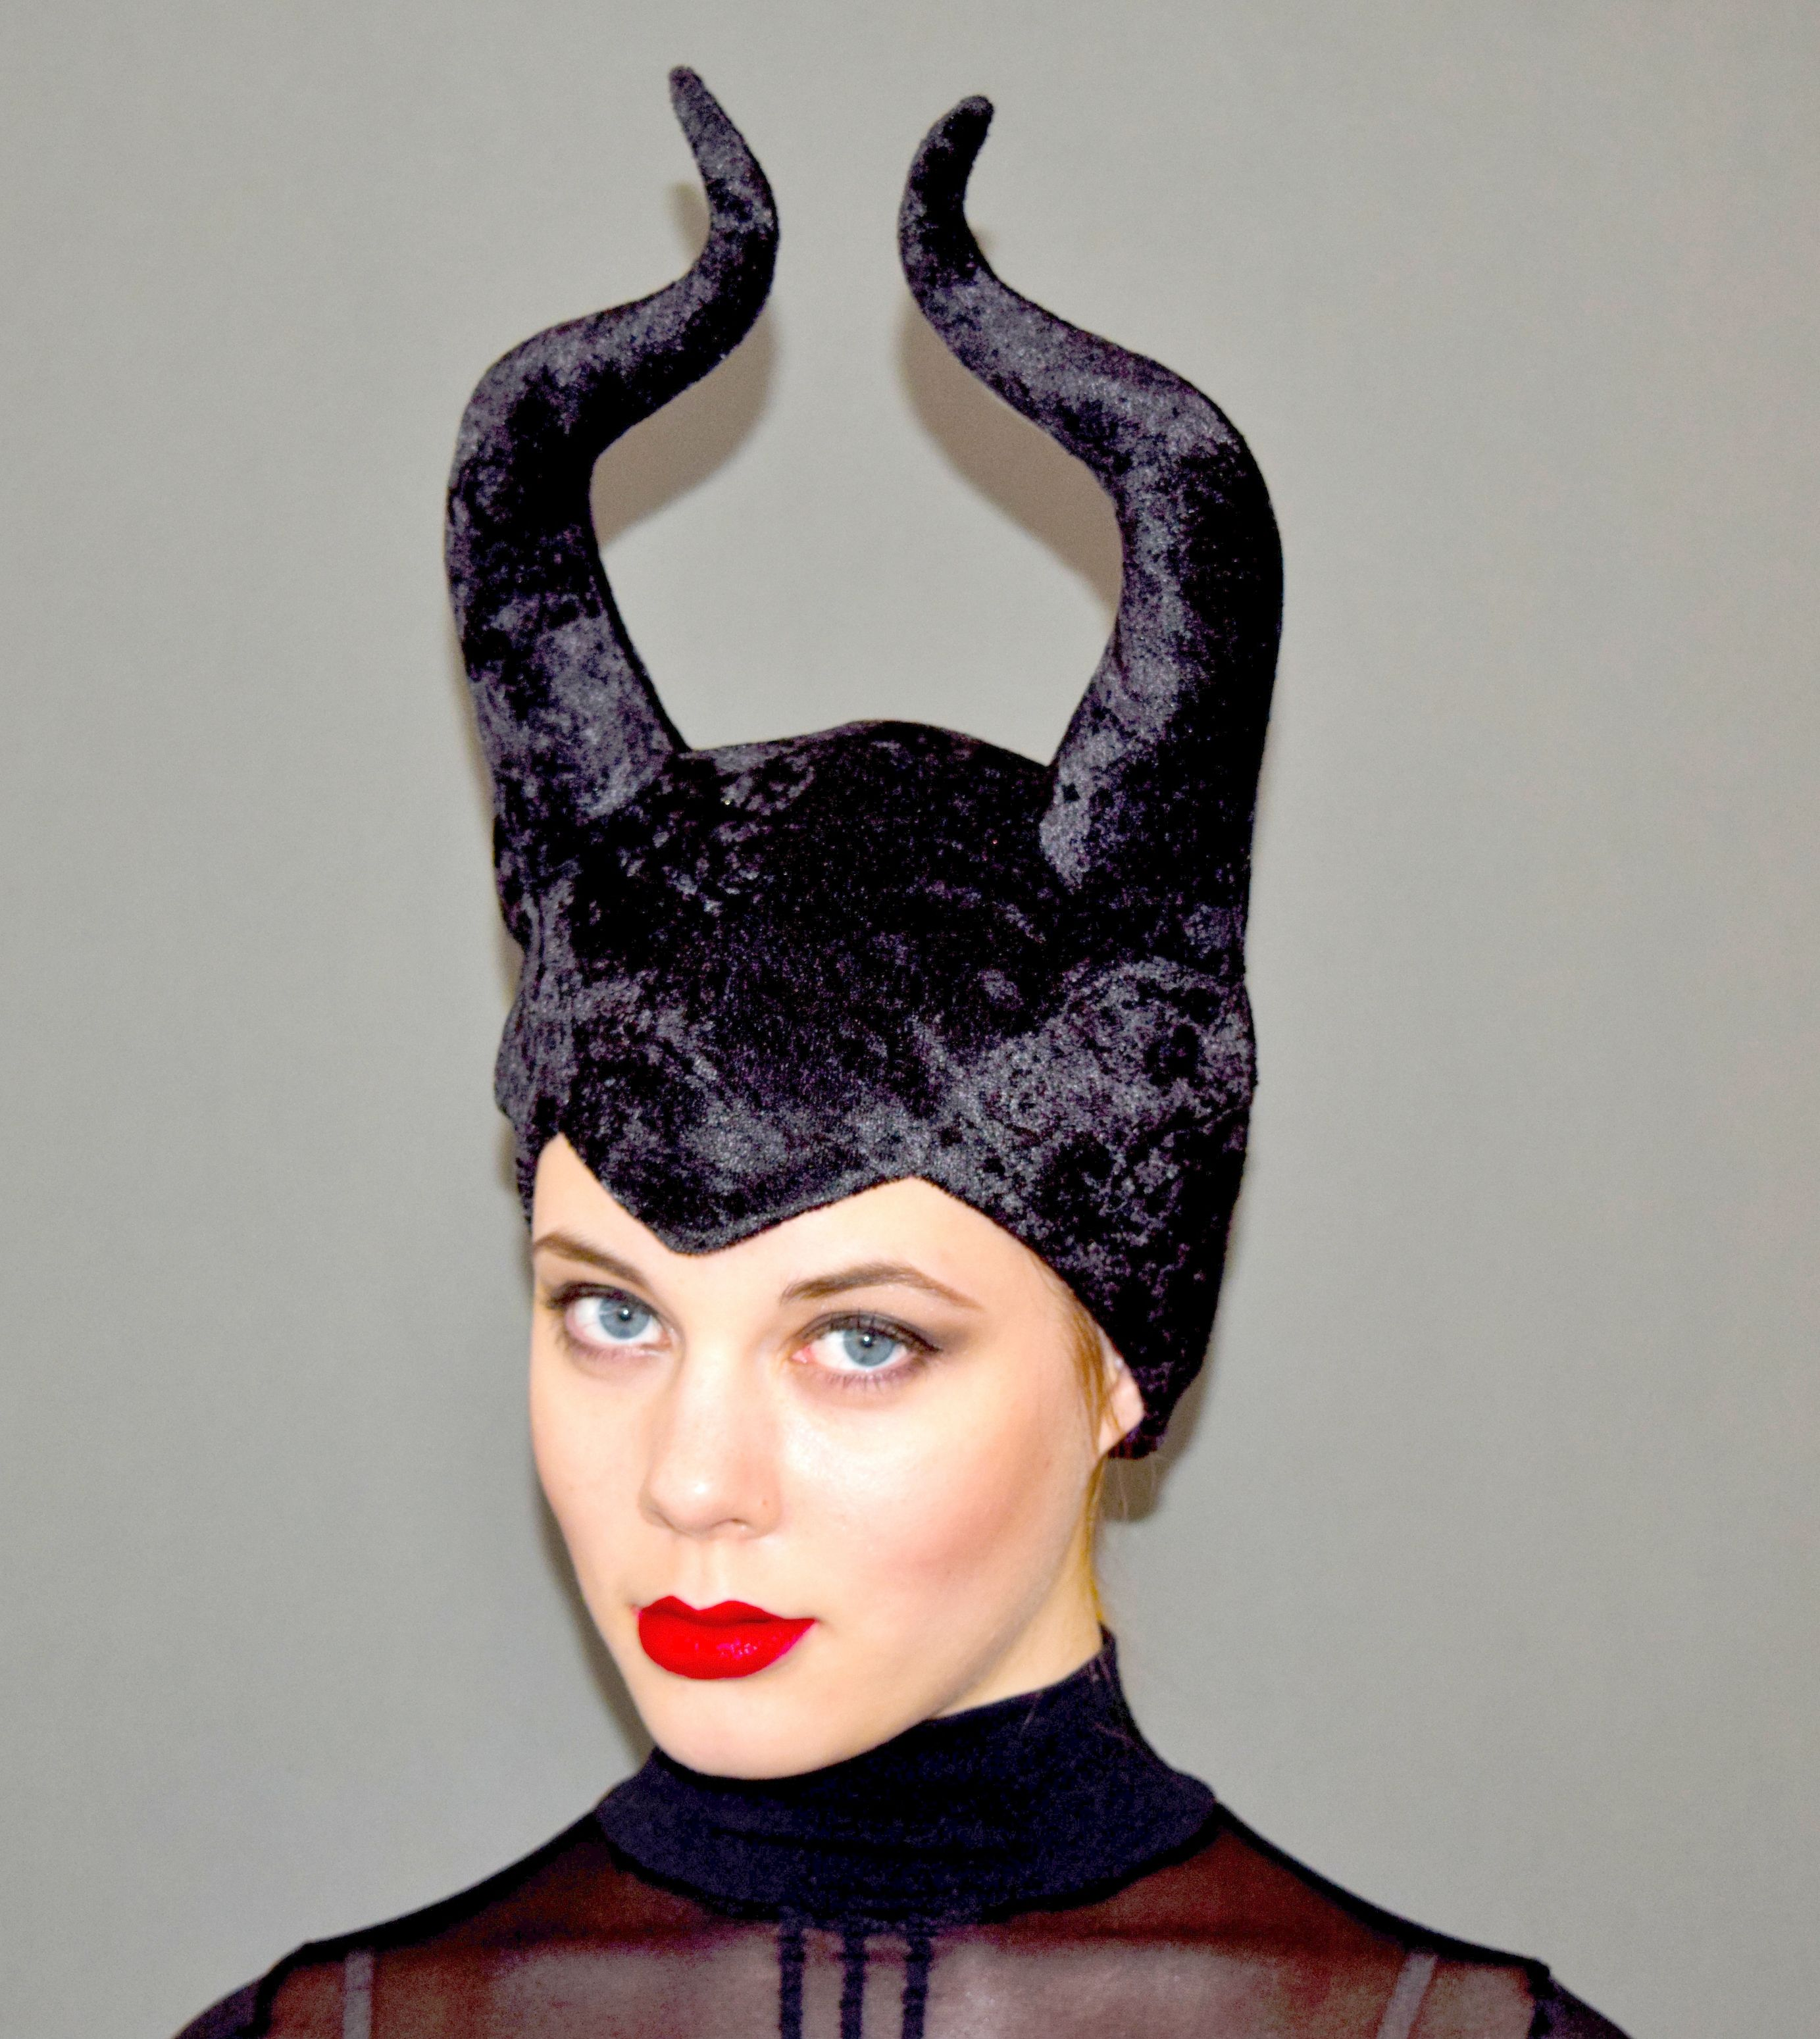 Buy Custom Maleficent Headpiece Horns Made To Order From